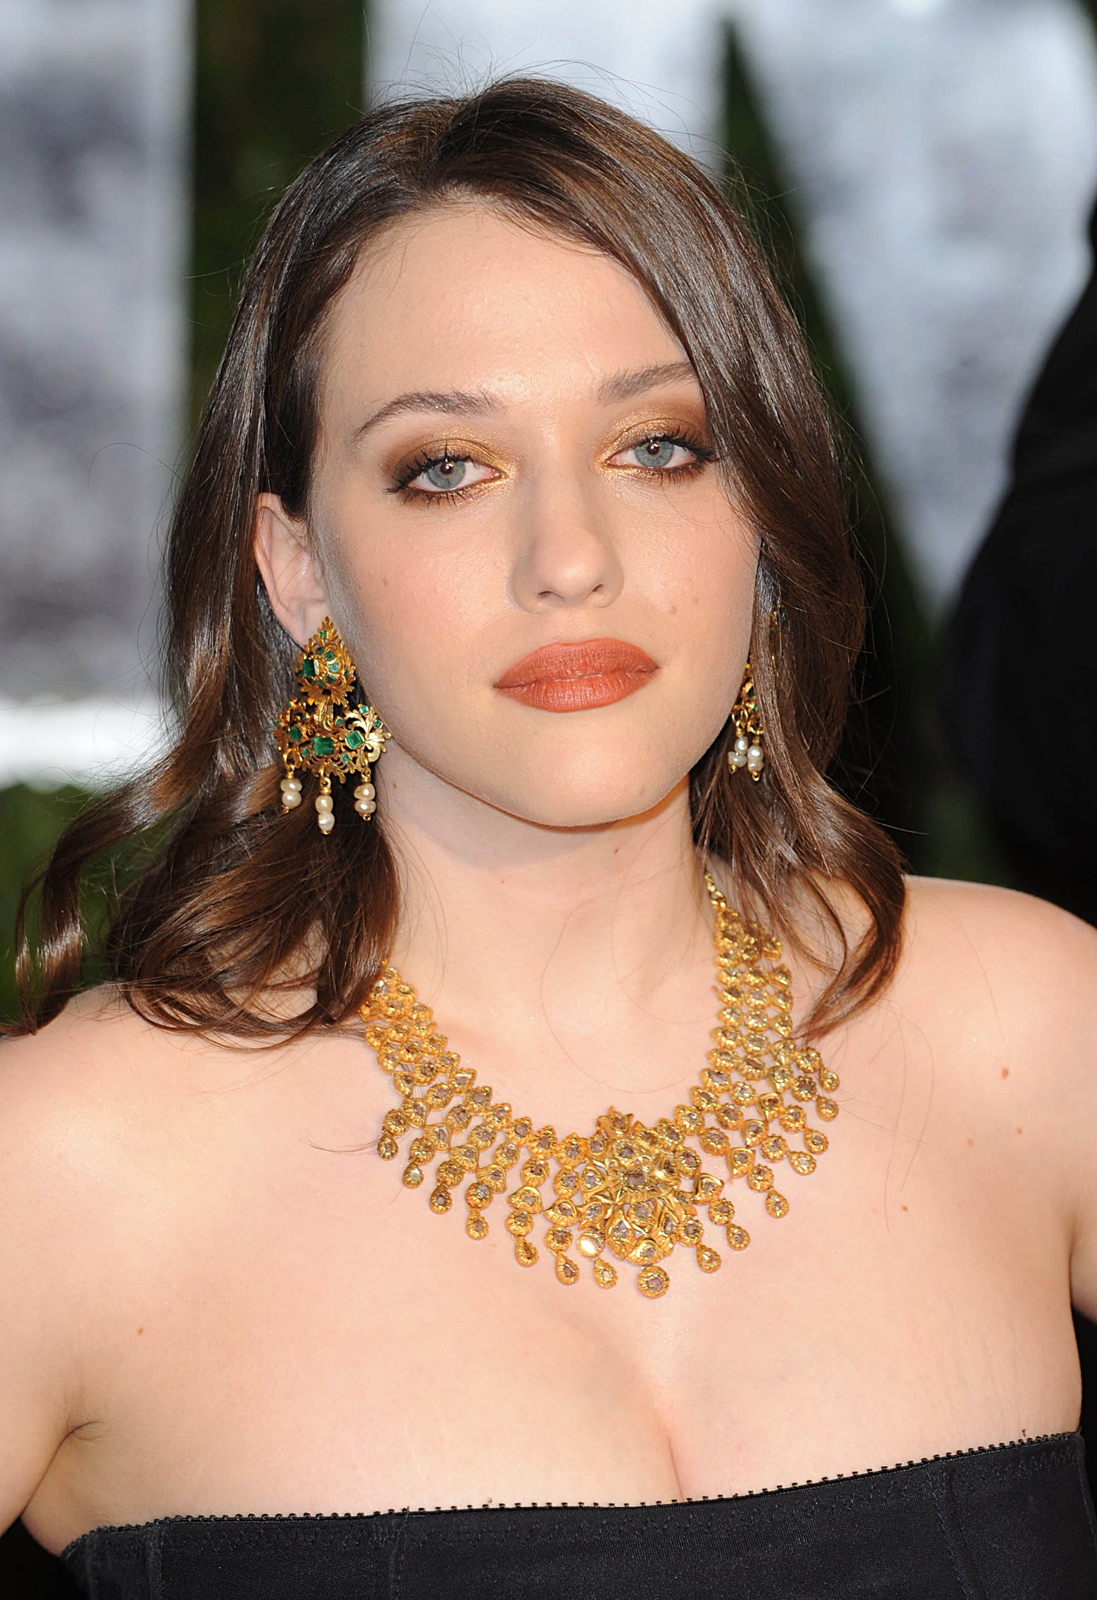 Central Wallpaper: Kat Dennings HD Wallpapers